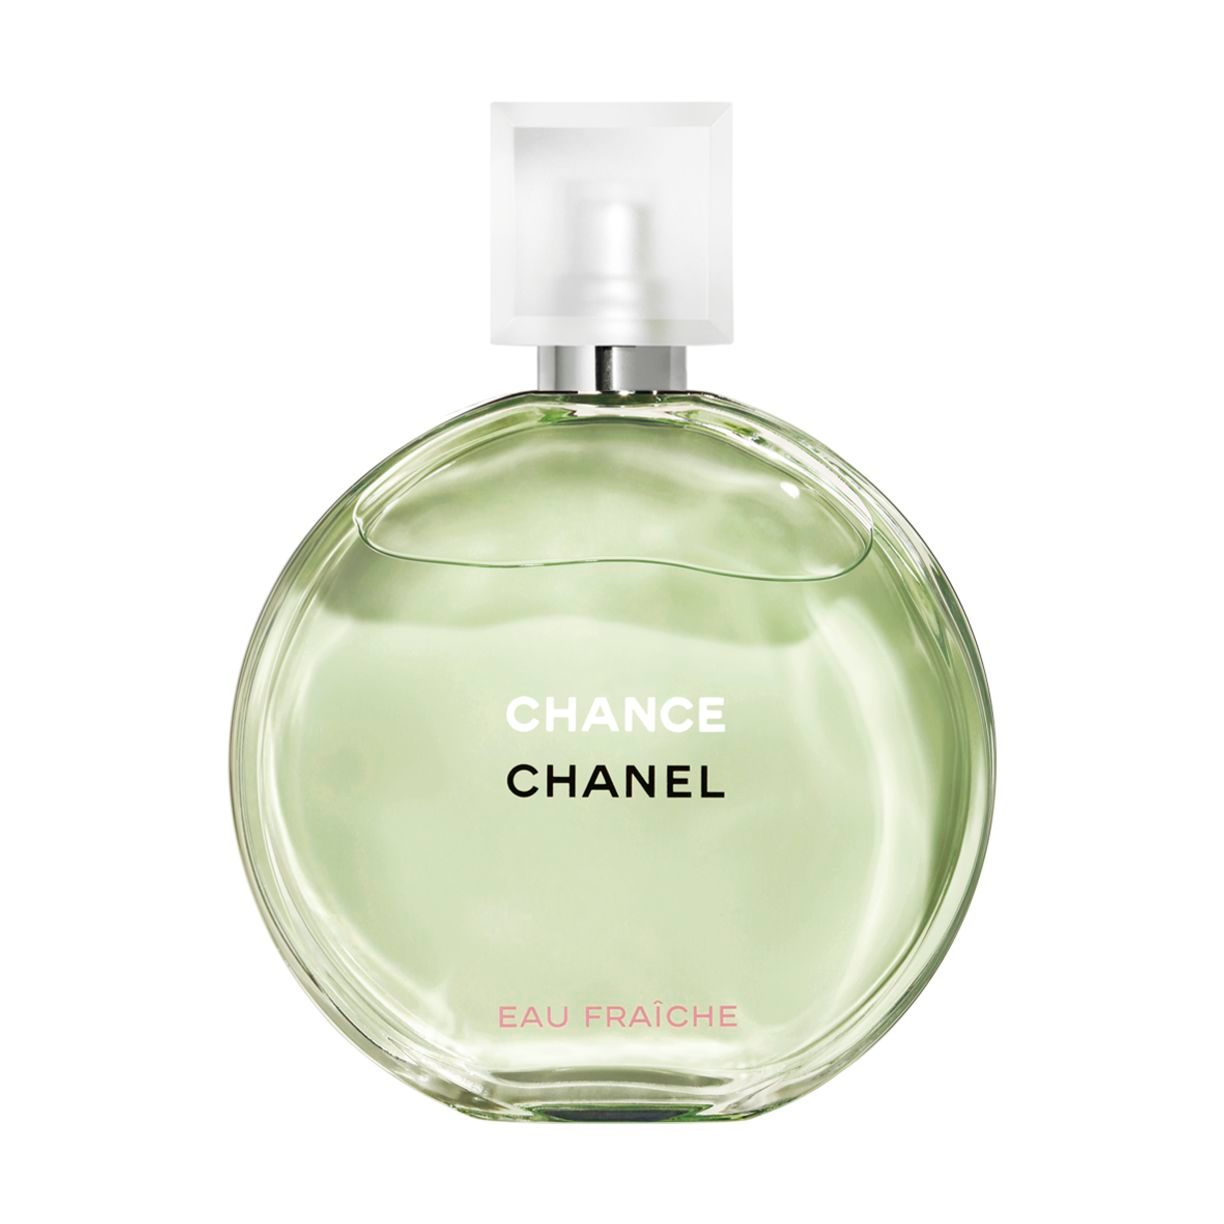 CHANCE EAU FRAICHE EAU DE TOILETTE SPRAY